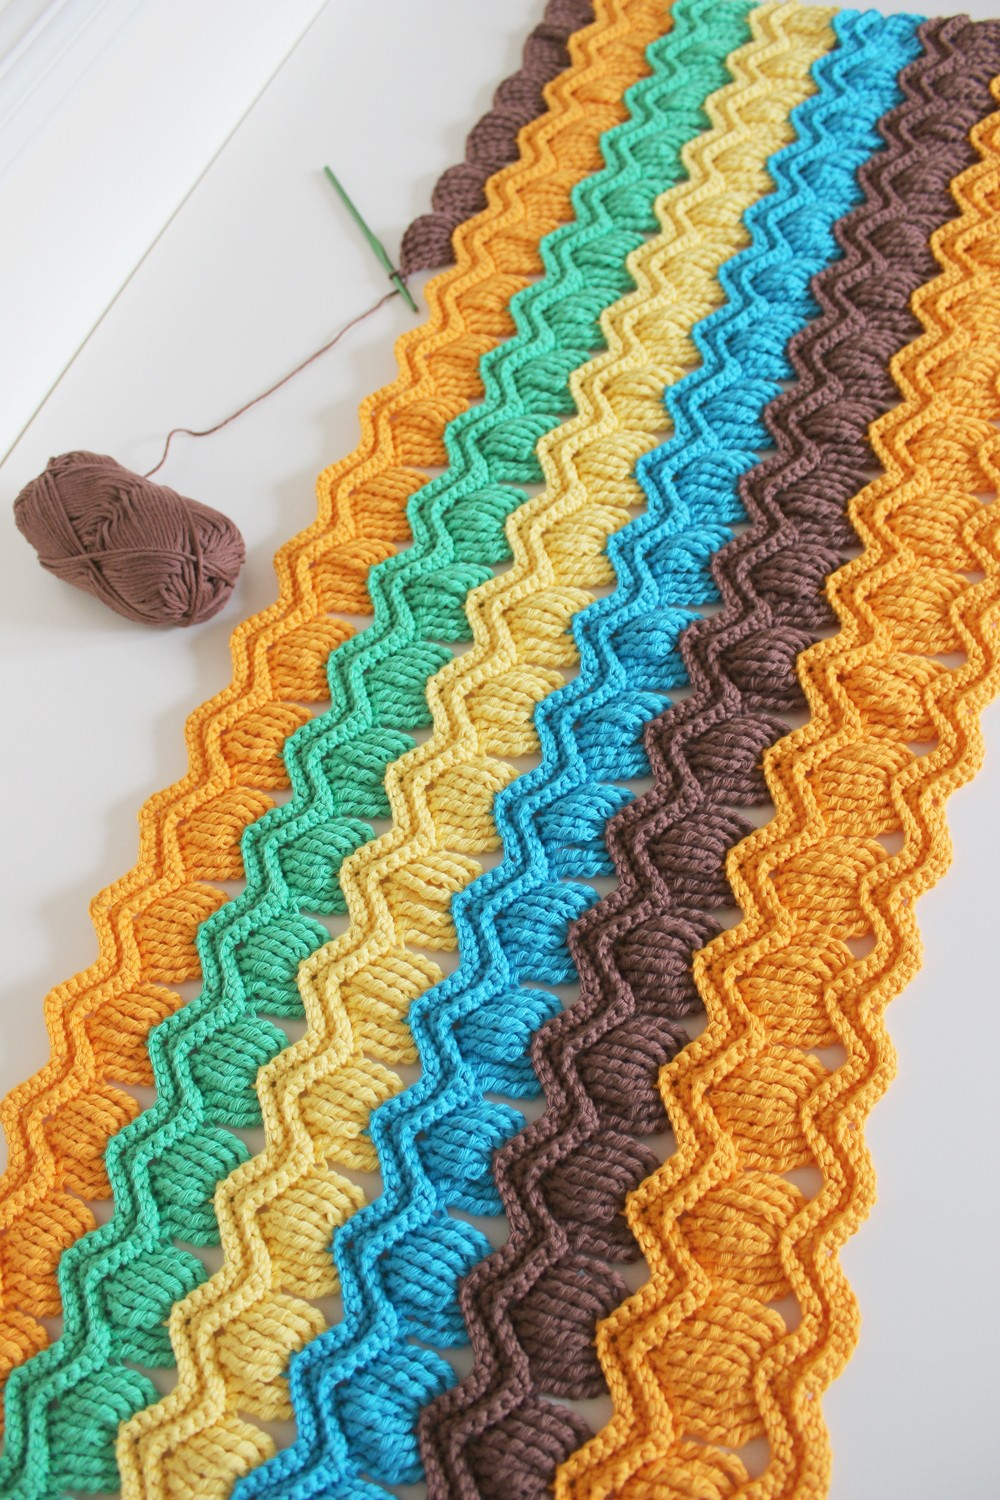 Crochet Stitch Patterns : Free Pattern] Crochet Vintage Fan Ripple Stitch